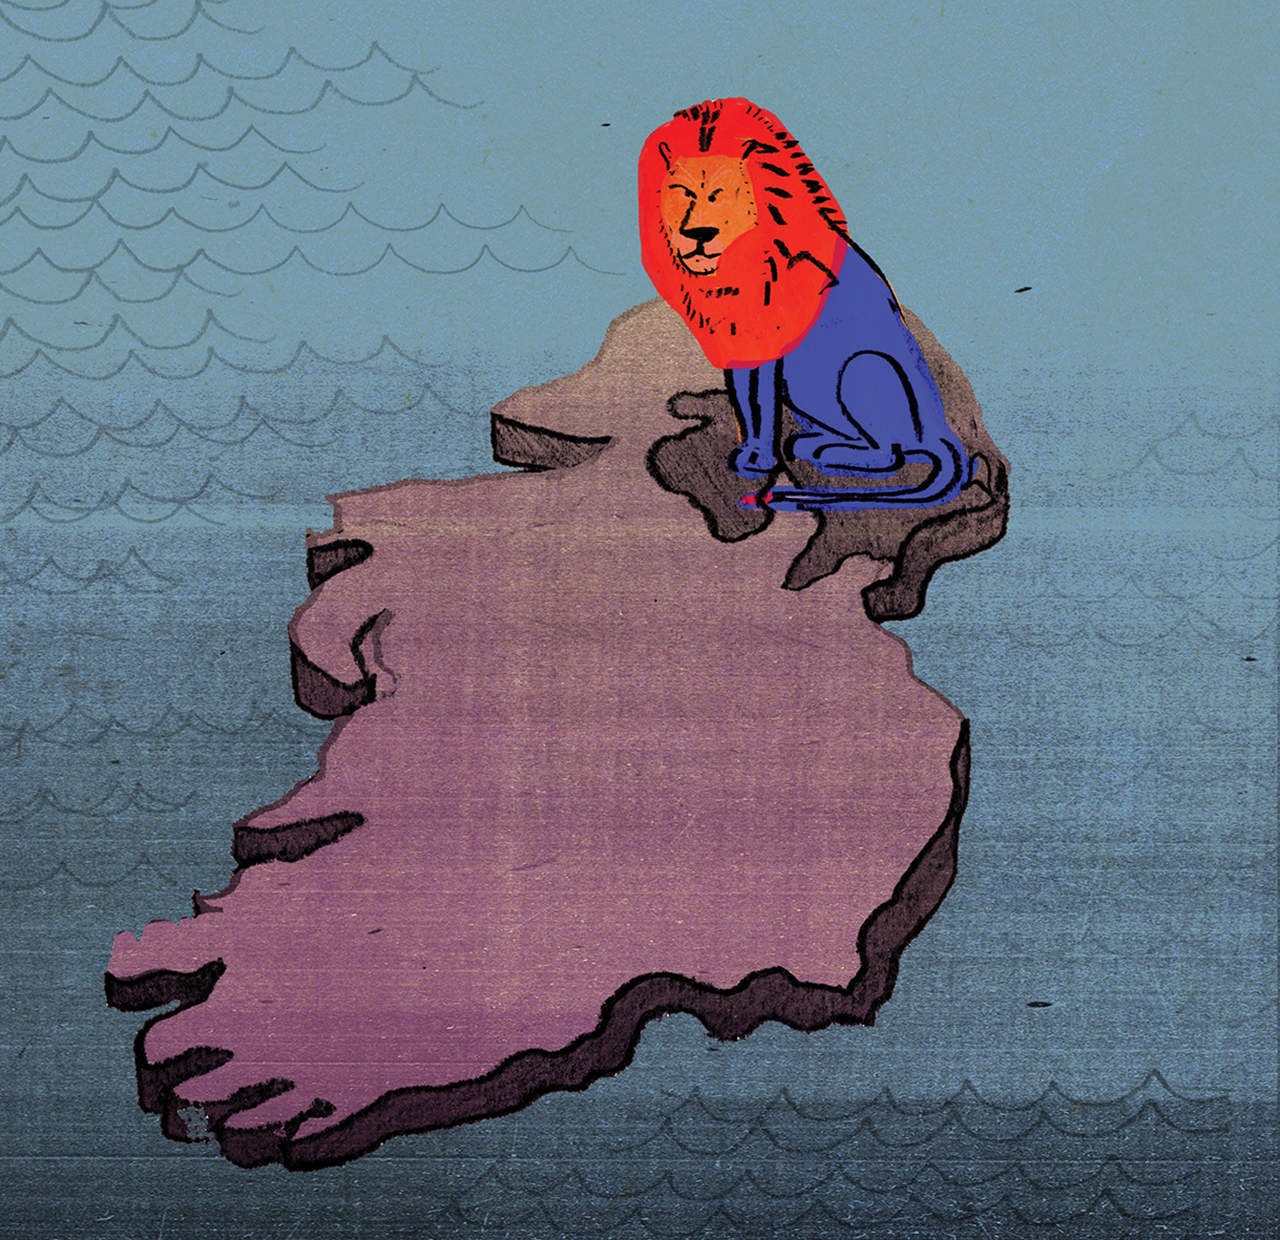 How Northern Ireland's DUP boosted Brexit